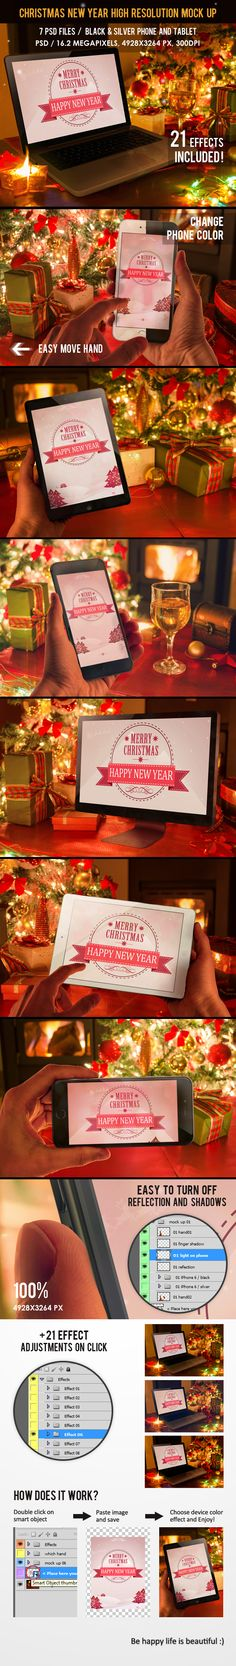 #Christmas #NewYear #Mockup #design #template #macbook #imac #ipad #photoshop Download: http://graphicriver.net/item/christmas-new-year-mock-up/9830869